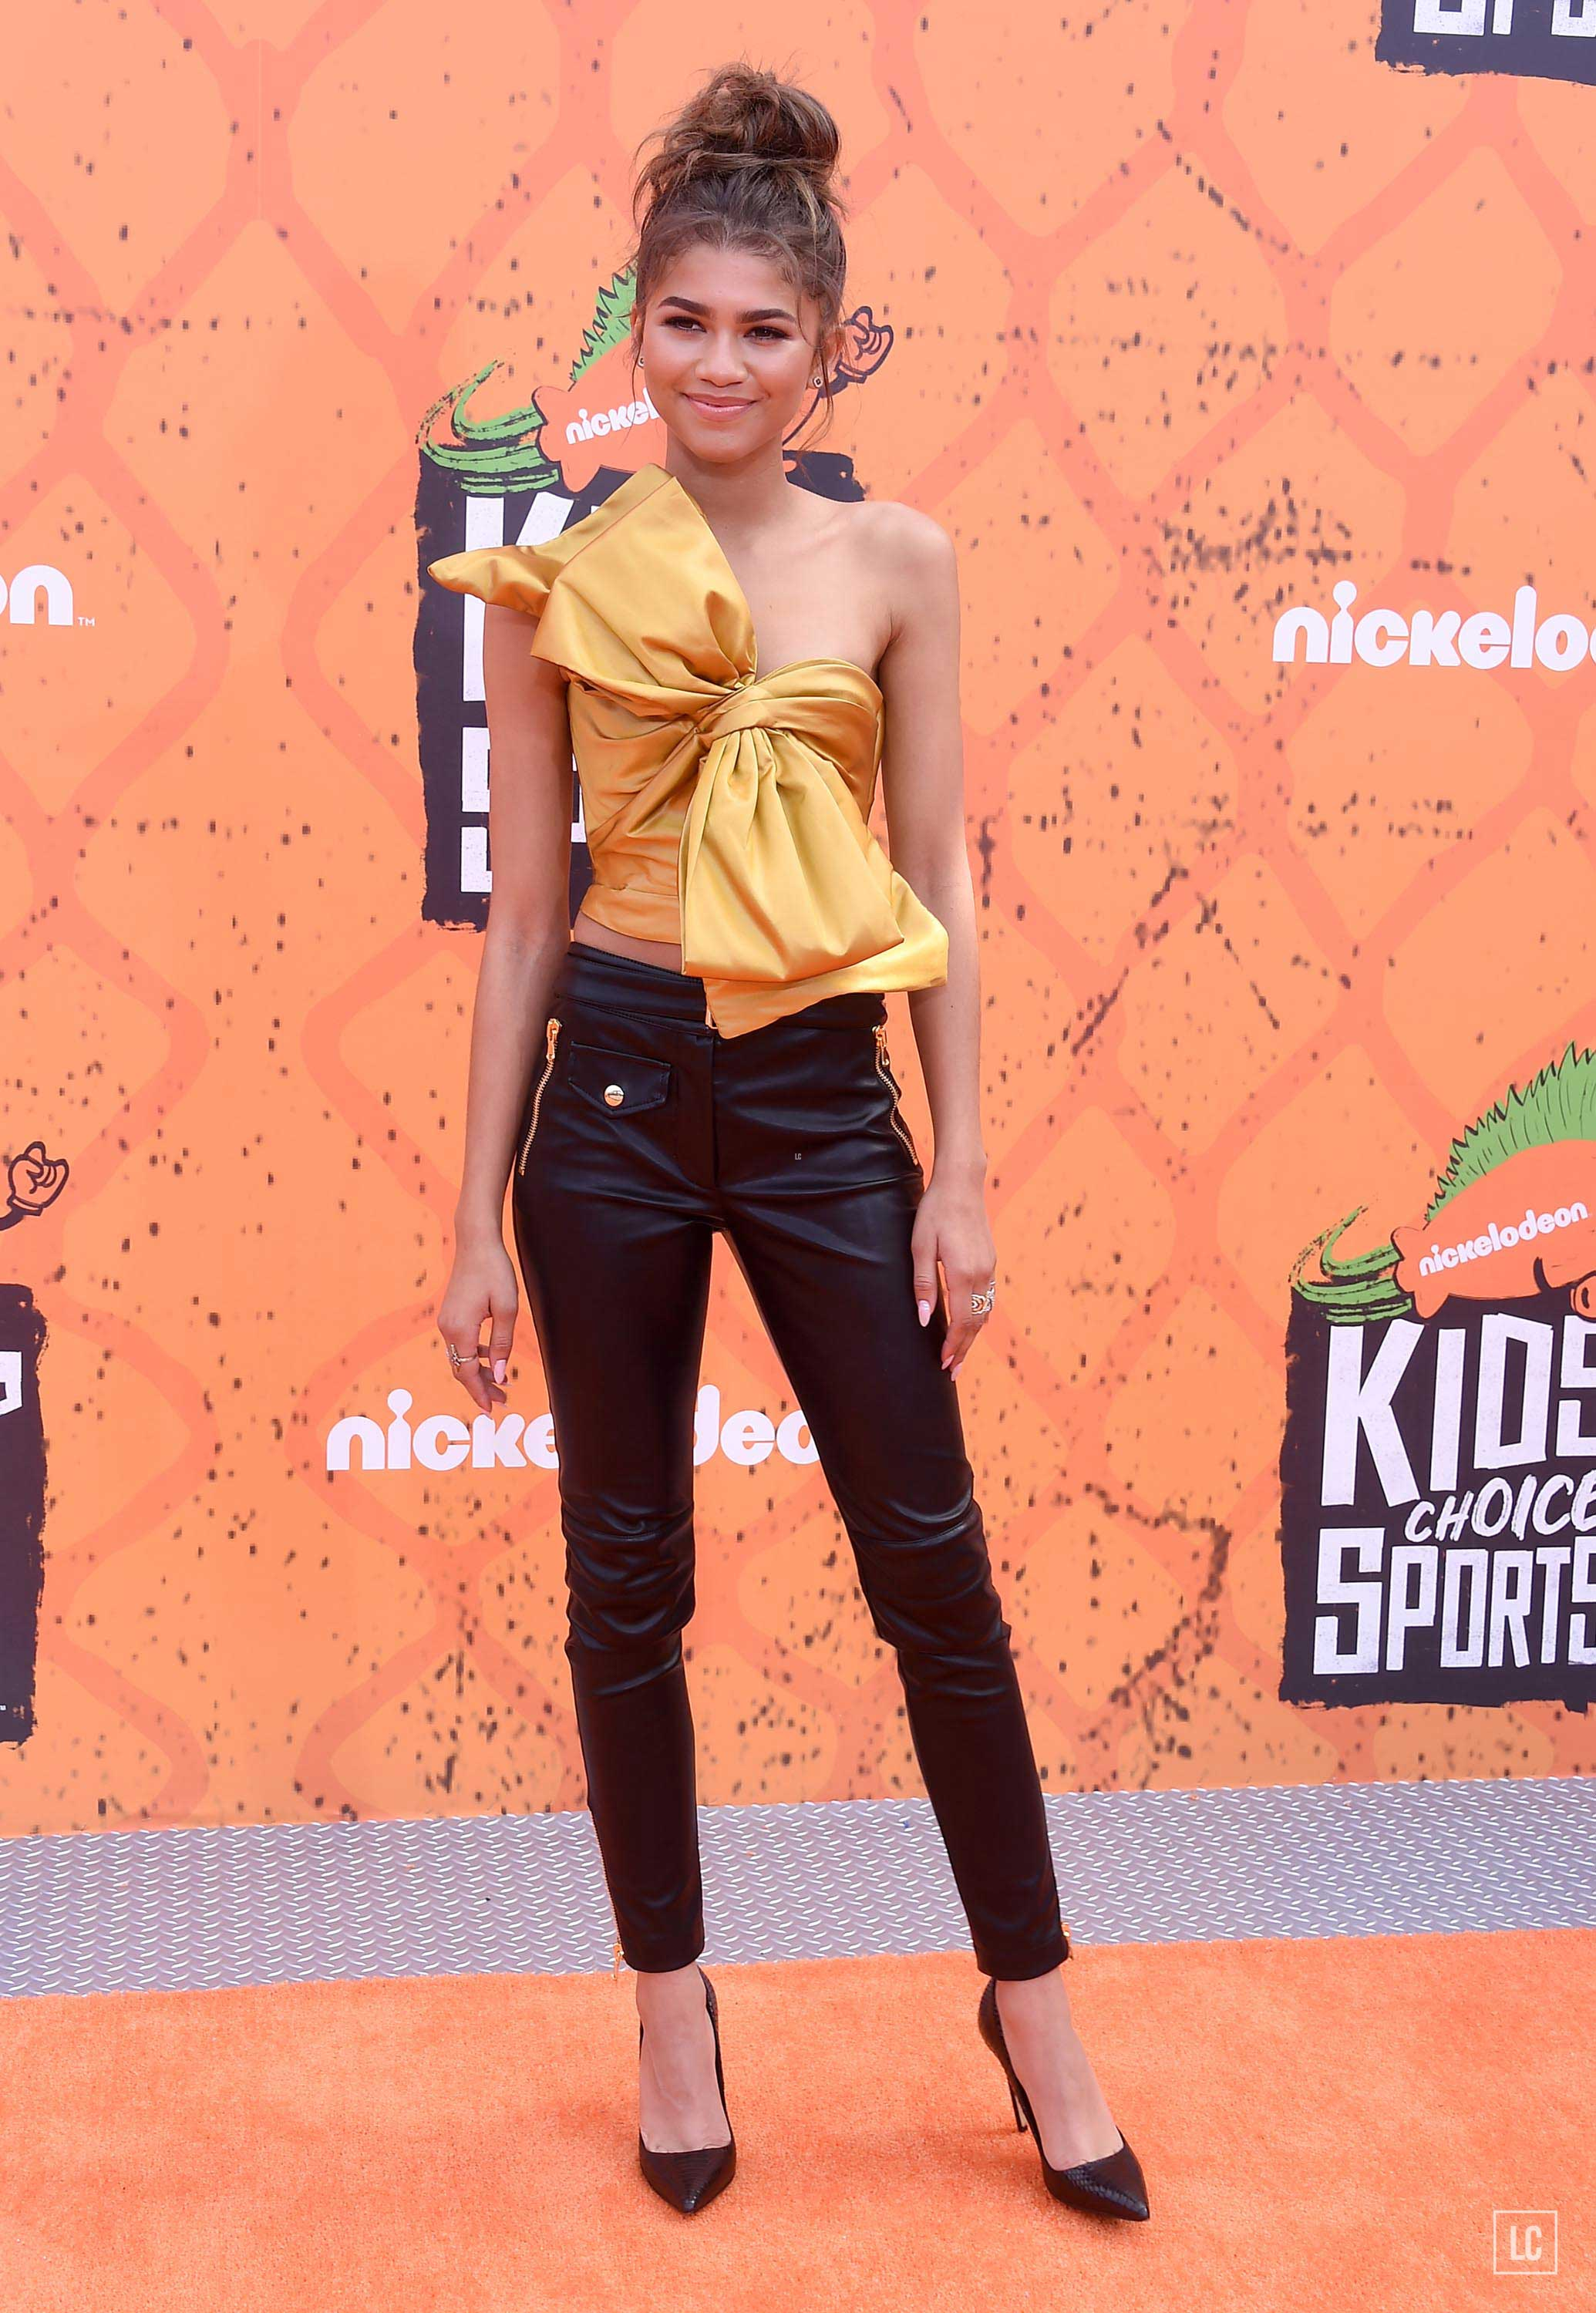 Image Result For Kids Choice Sports